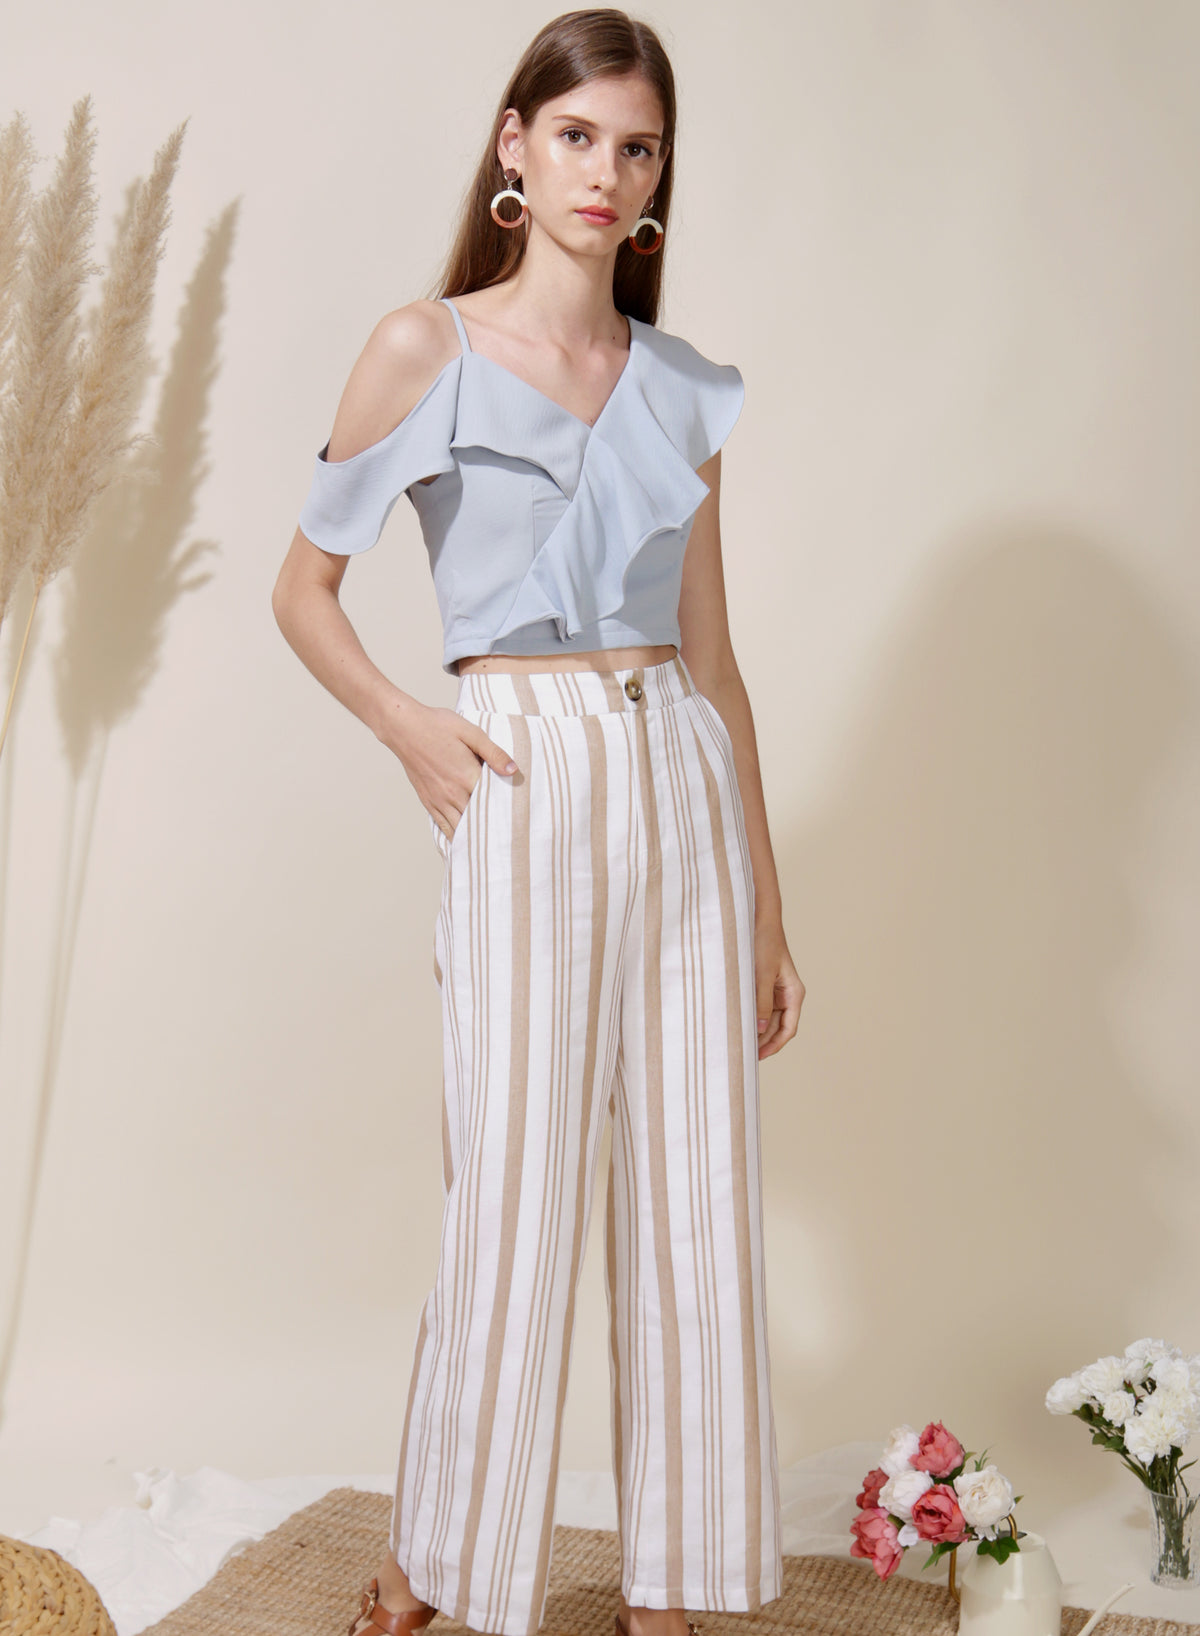 Belief Striped Linen Pants (Oat) at $ 38.00 only sold at And Well Dressed Online Fashion Store Singapore